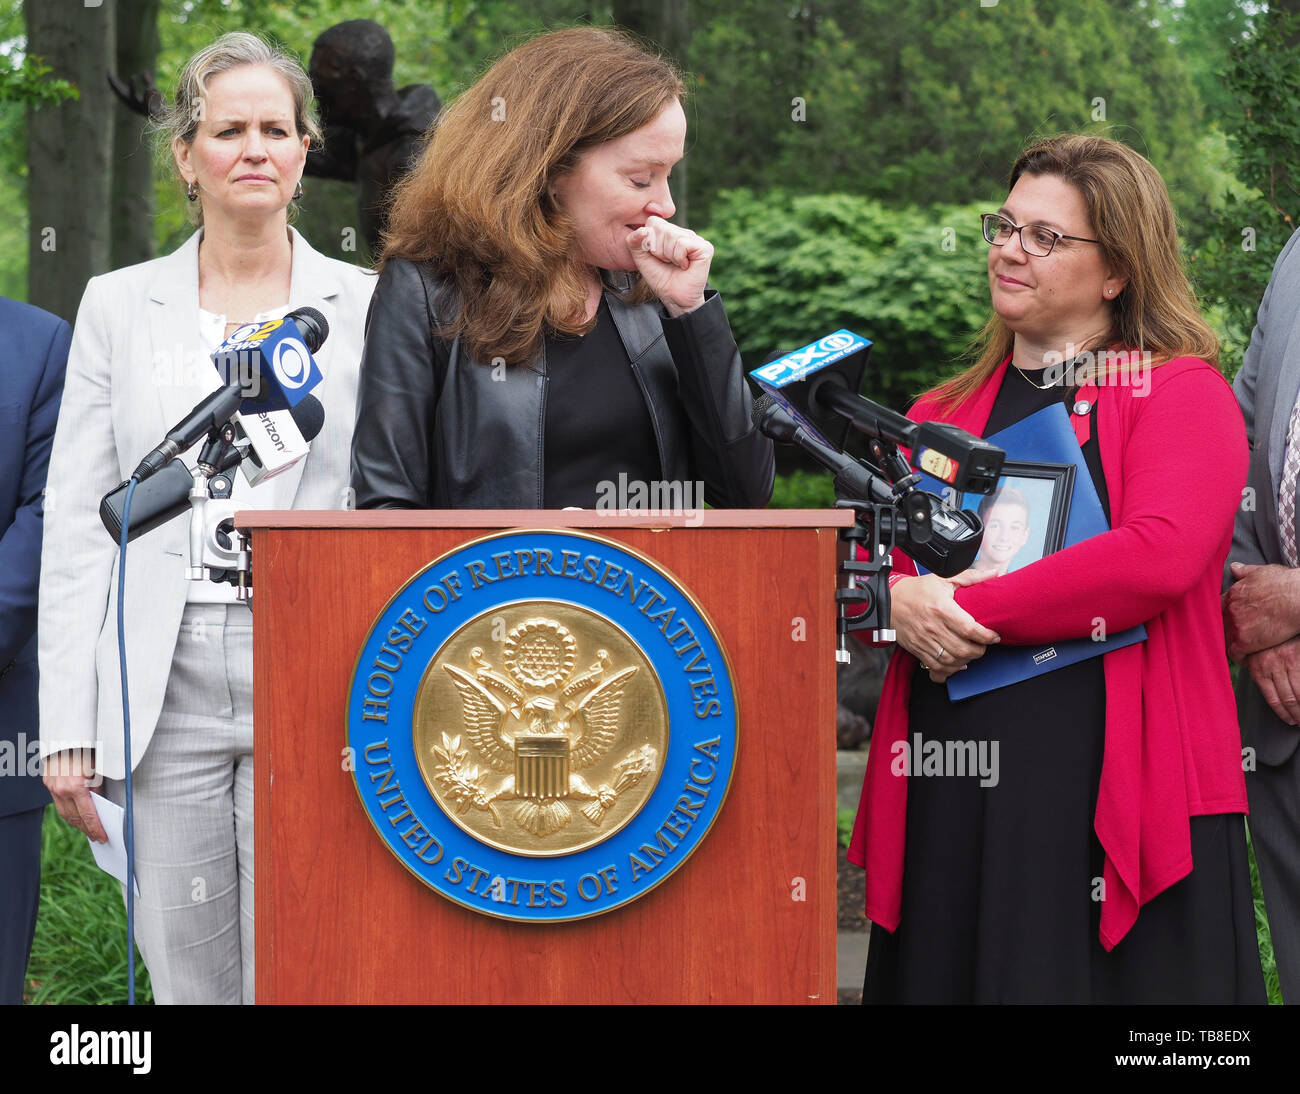 Hempstead, New York, USA. 30th May, 2019. At podium, U.S. Representative KATHLEEN RICE (NY-04) holds a press conference to announce she's introducing Three Bills to Congress to combat Impaired and distracted Driving. Her voice broke with sadness and she turned toward ALISA MCMORRIS, when the Rep. explained McMorris's 12-year-old son Andrew was killed by drunk driver exactly 8 months ago in Manorville while walking with a group of fellow Boy Scouts. At left is Nassau County Executive LAURA CURRAN. Congresswoman Rice announced the package of 3 bills - End Drunk Driving Act, the Prevent - Stock Image